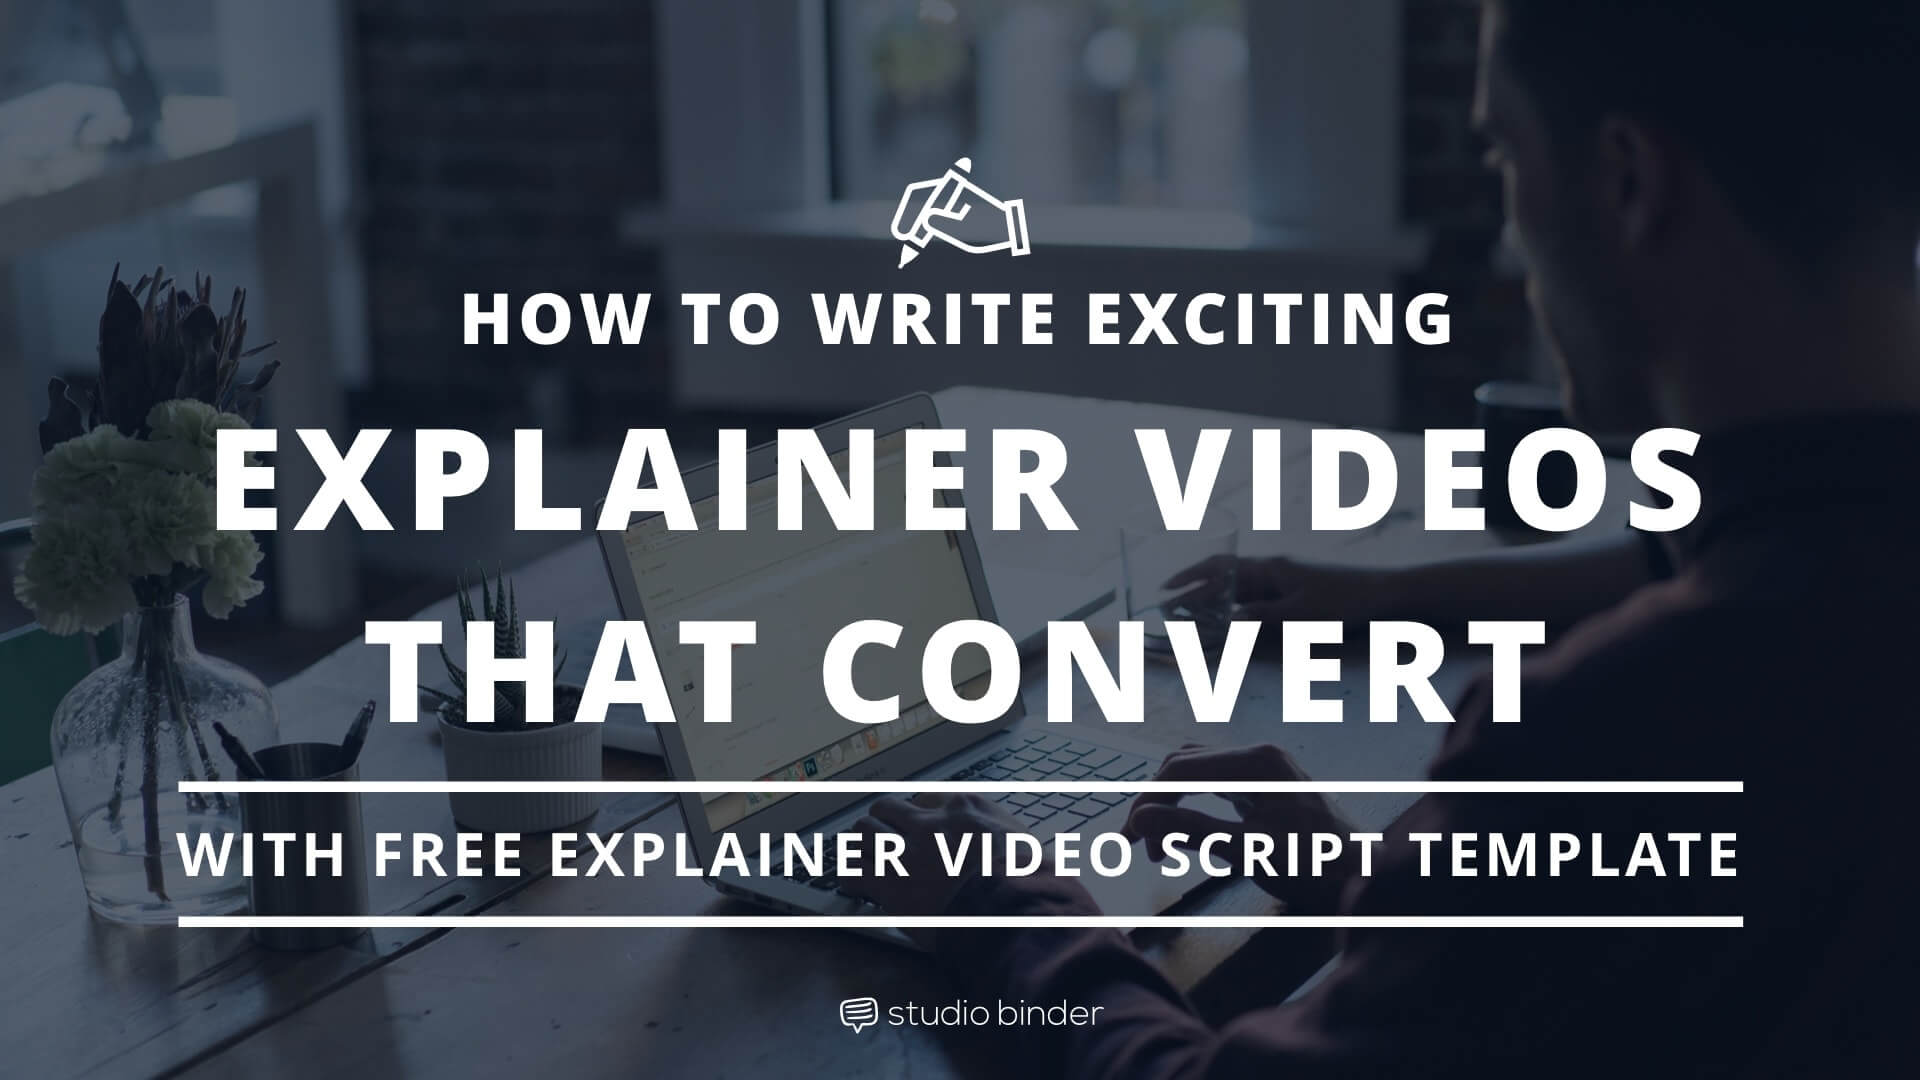 How to Write Exciting Explainer Explainer Videos That Convert (with FREE Explainer Video Script Template) - Featured - StudioBinder